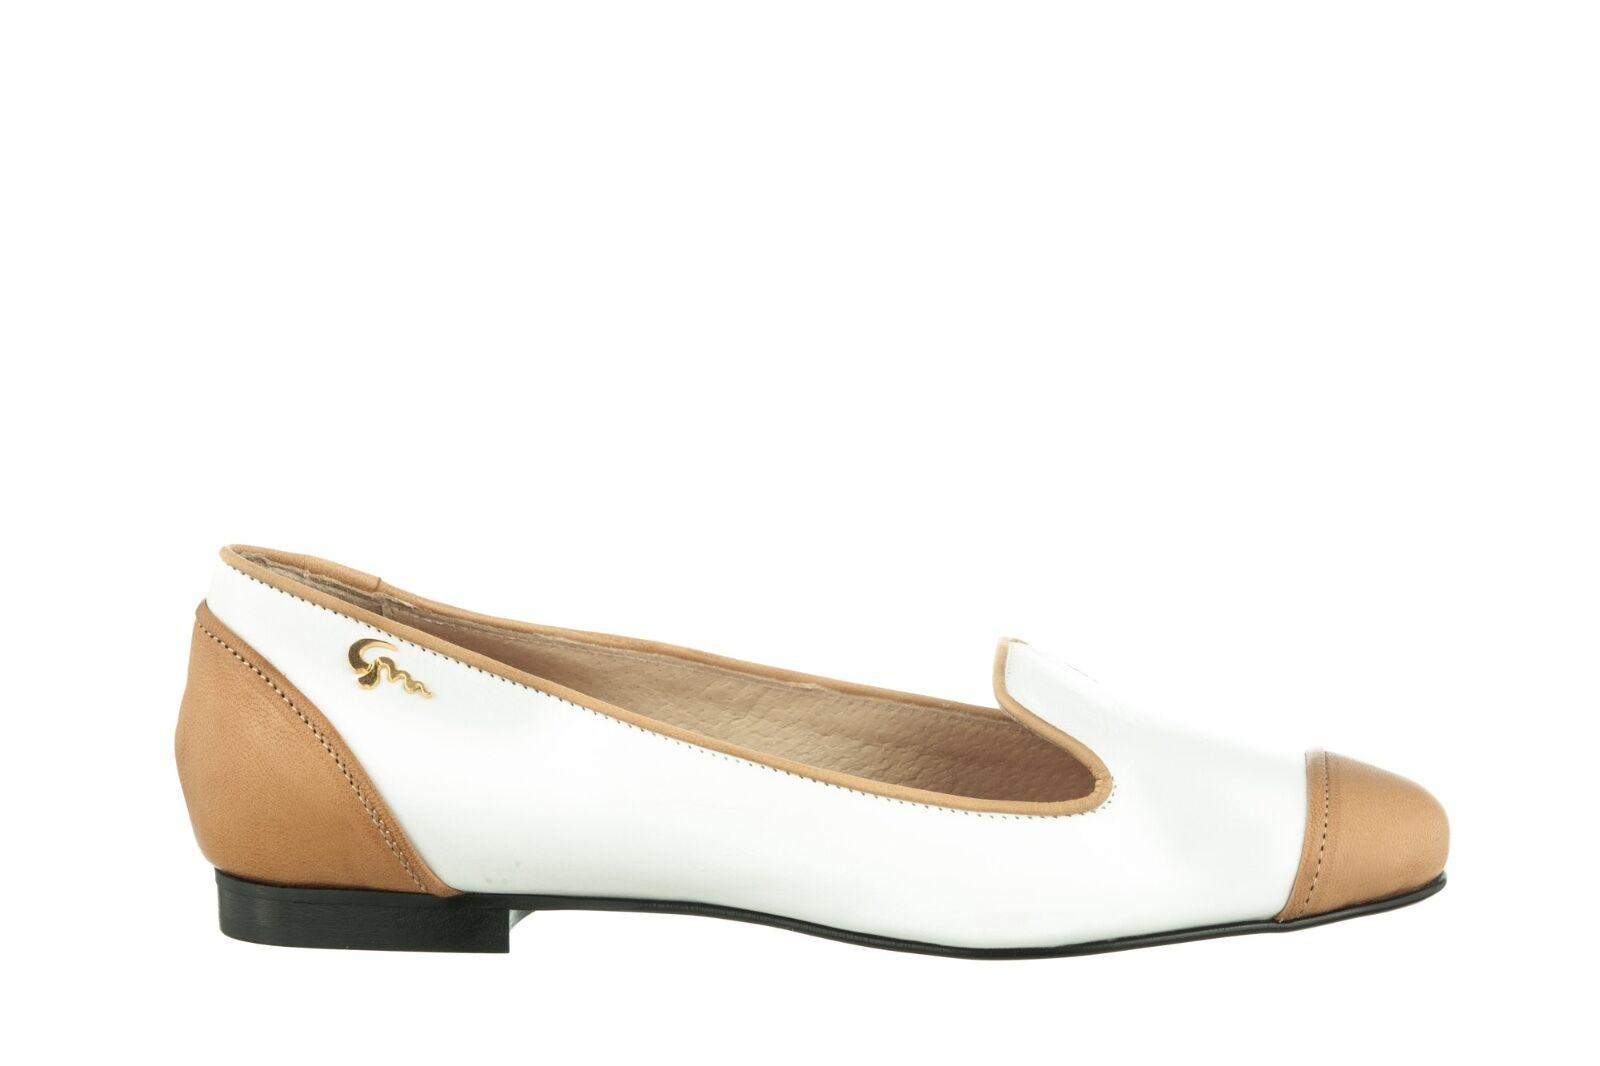 MORI MADE IN ITALY LEATHER SLIP ON FLATS SCHUHE Schuhe BALLERINA LEATHER ITALY Weiß BIANCO 38 451aa3